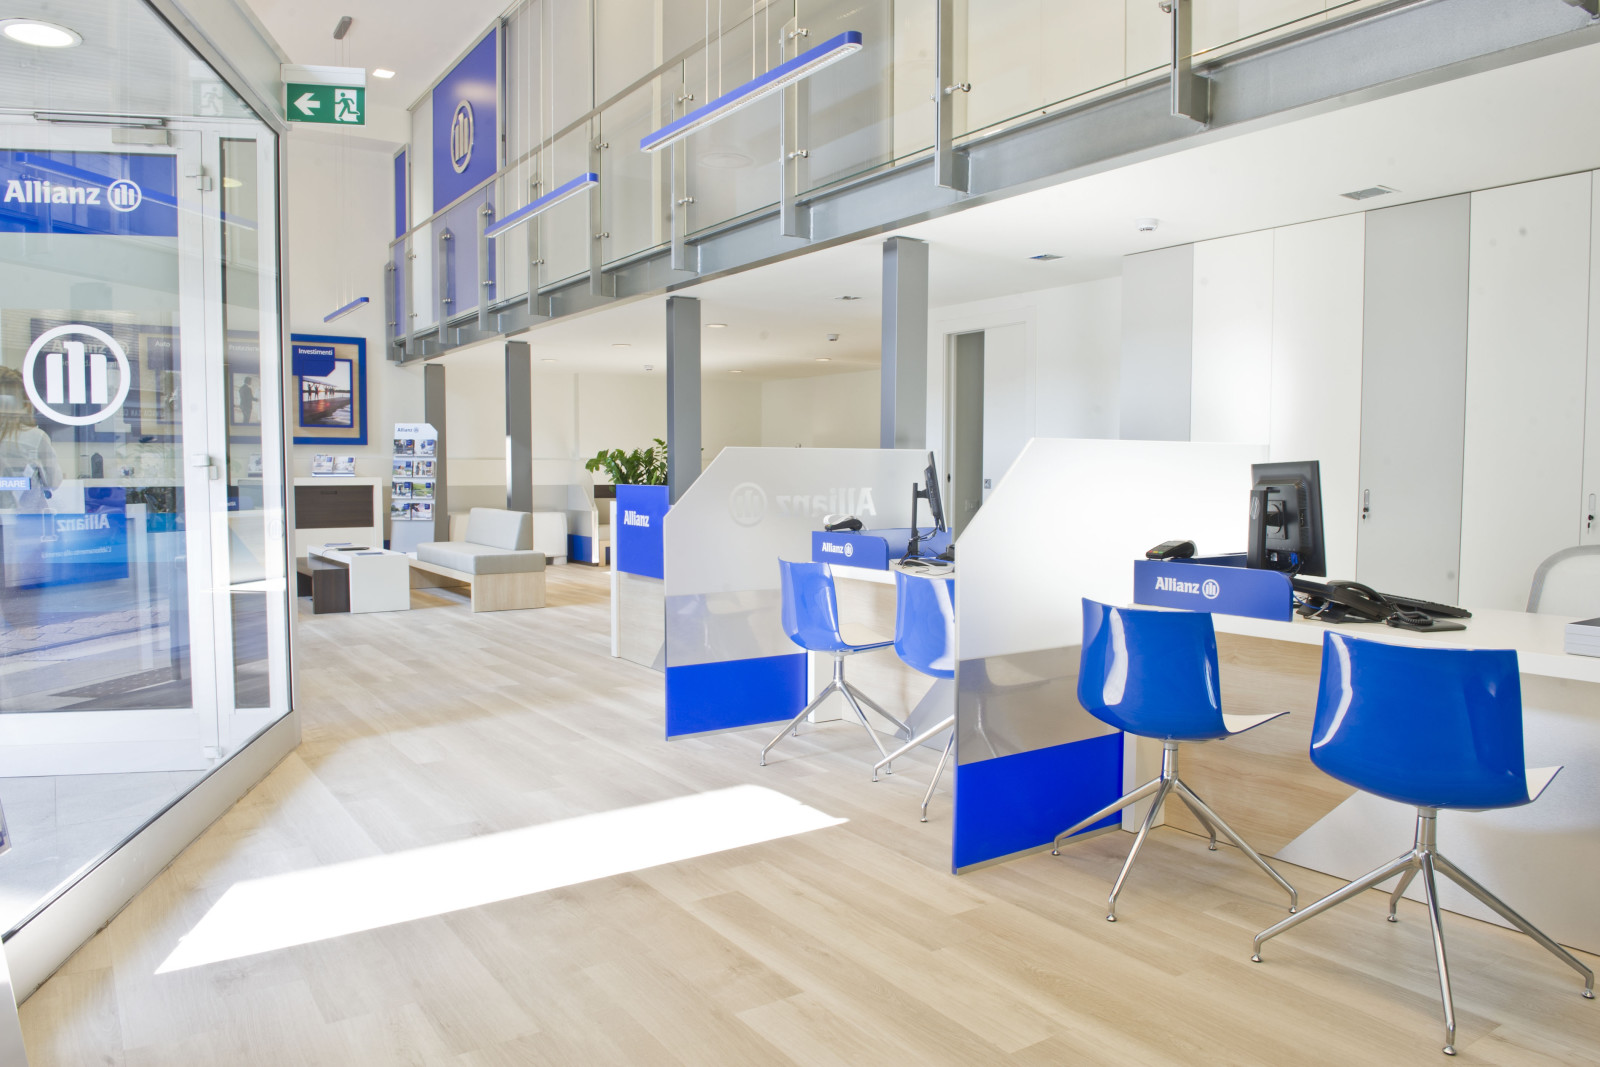 Allianz new agency model by dinn for Travel agency office interior design ideas